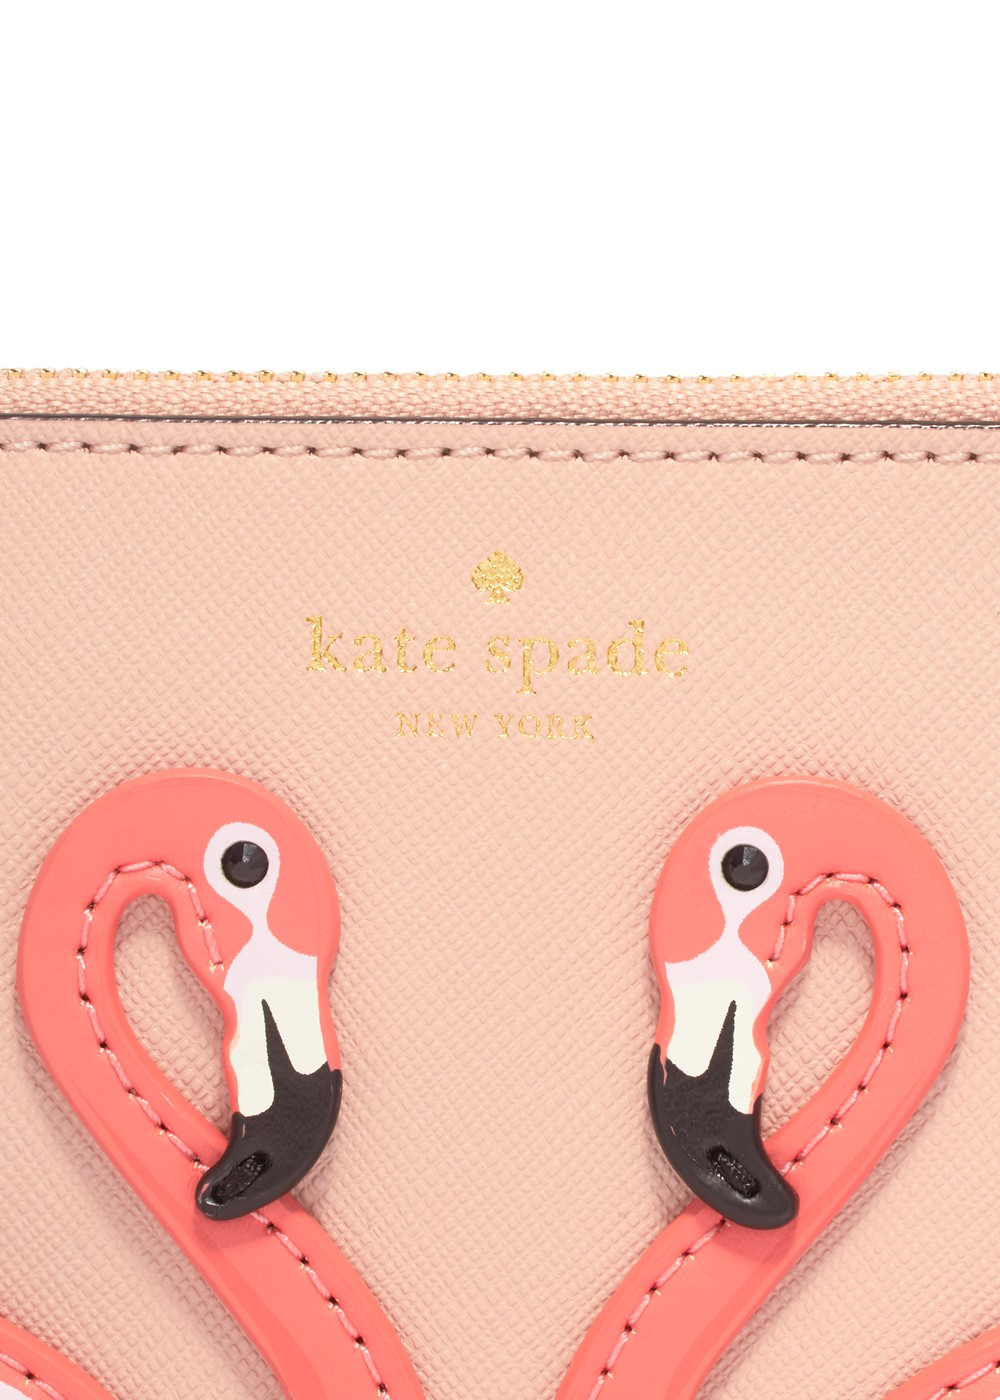 【最大48%OFF】BY THE POOL FLAMINGO MARLEY|MULTI|トラベルグッズ|kate spade new york - wallet and more